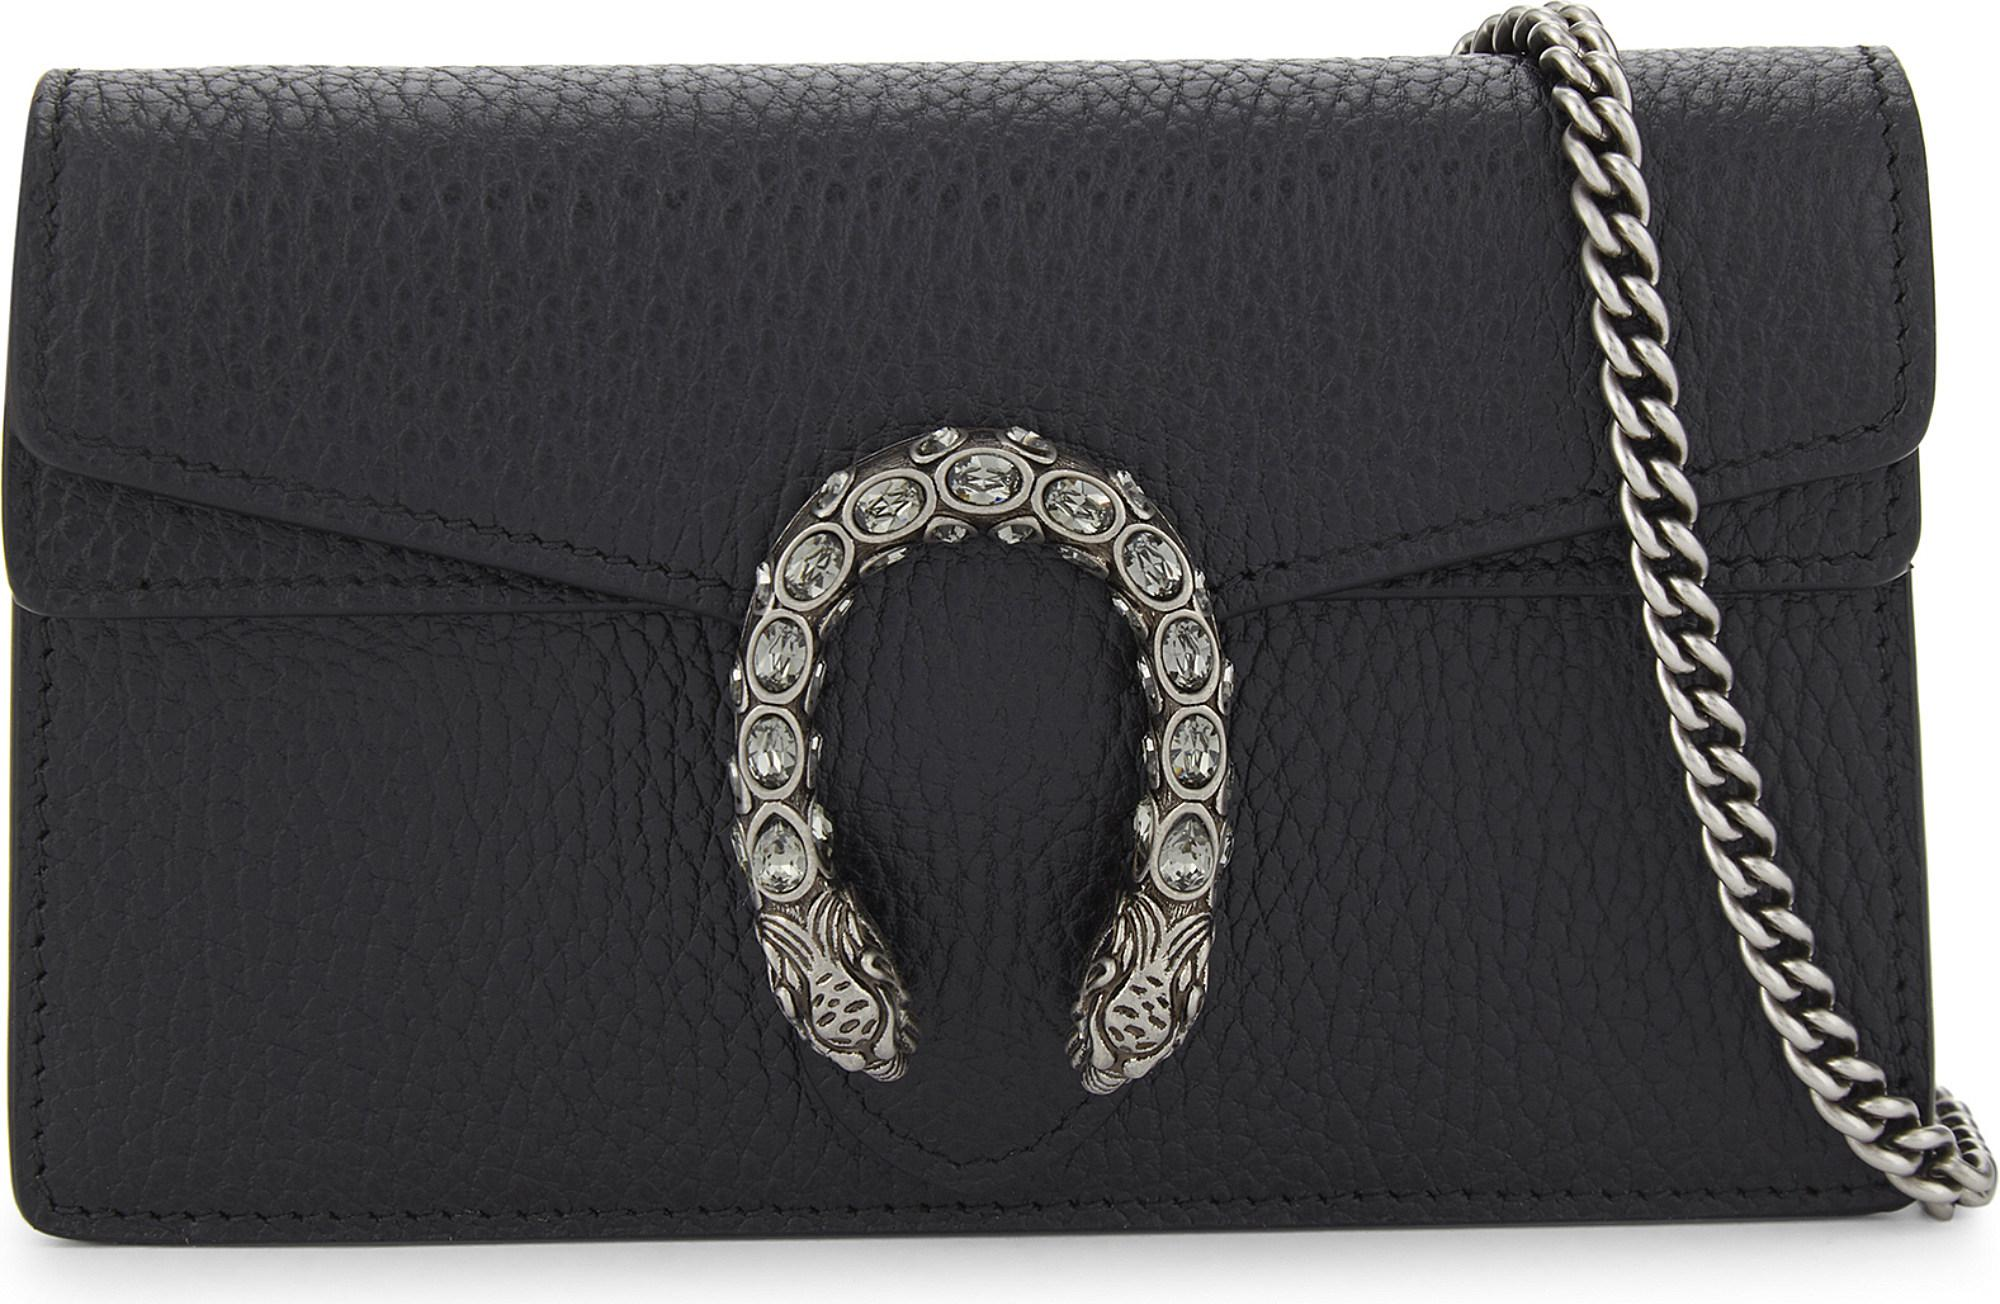 9c33aa6d766a Gallery. Previously sold at: Selfridges · Women's Cross Body Bags Women's Gucci  Dionysus